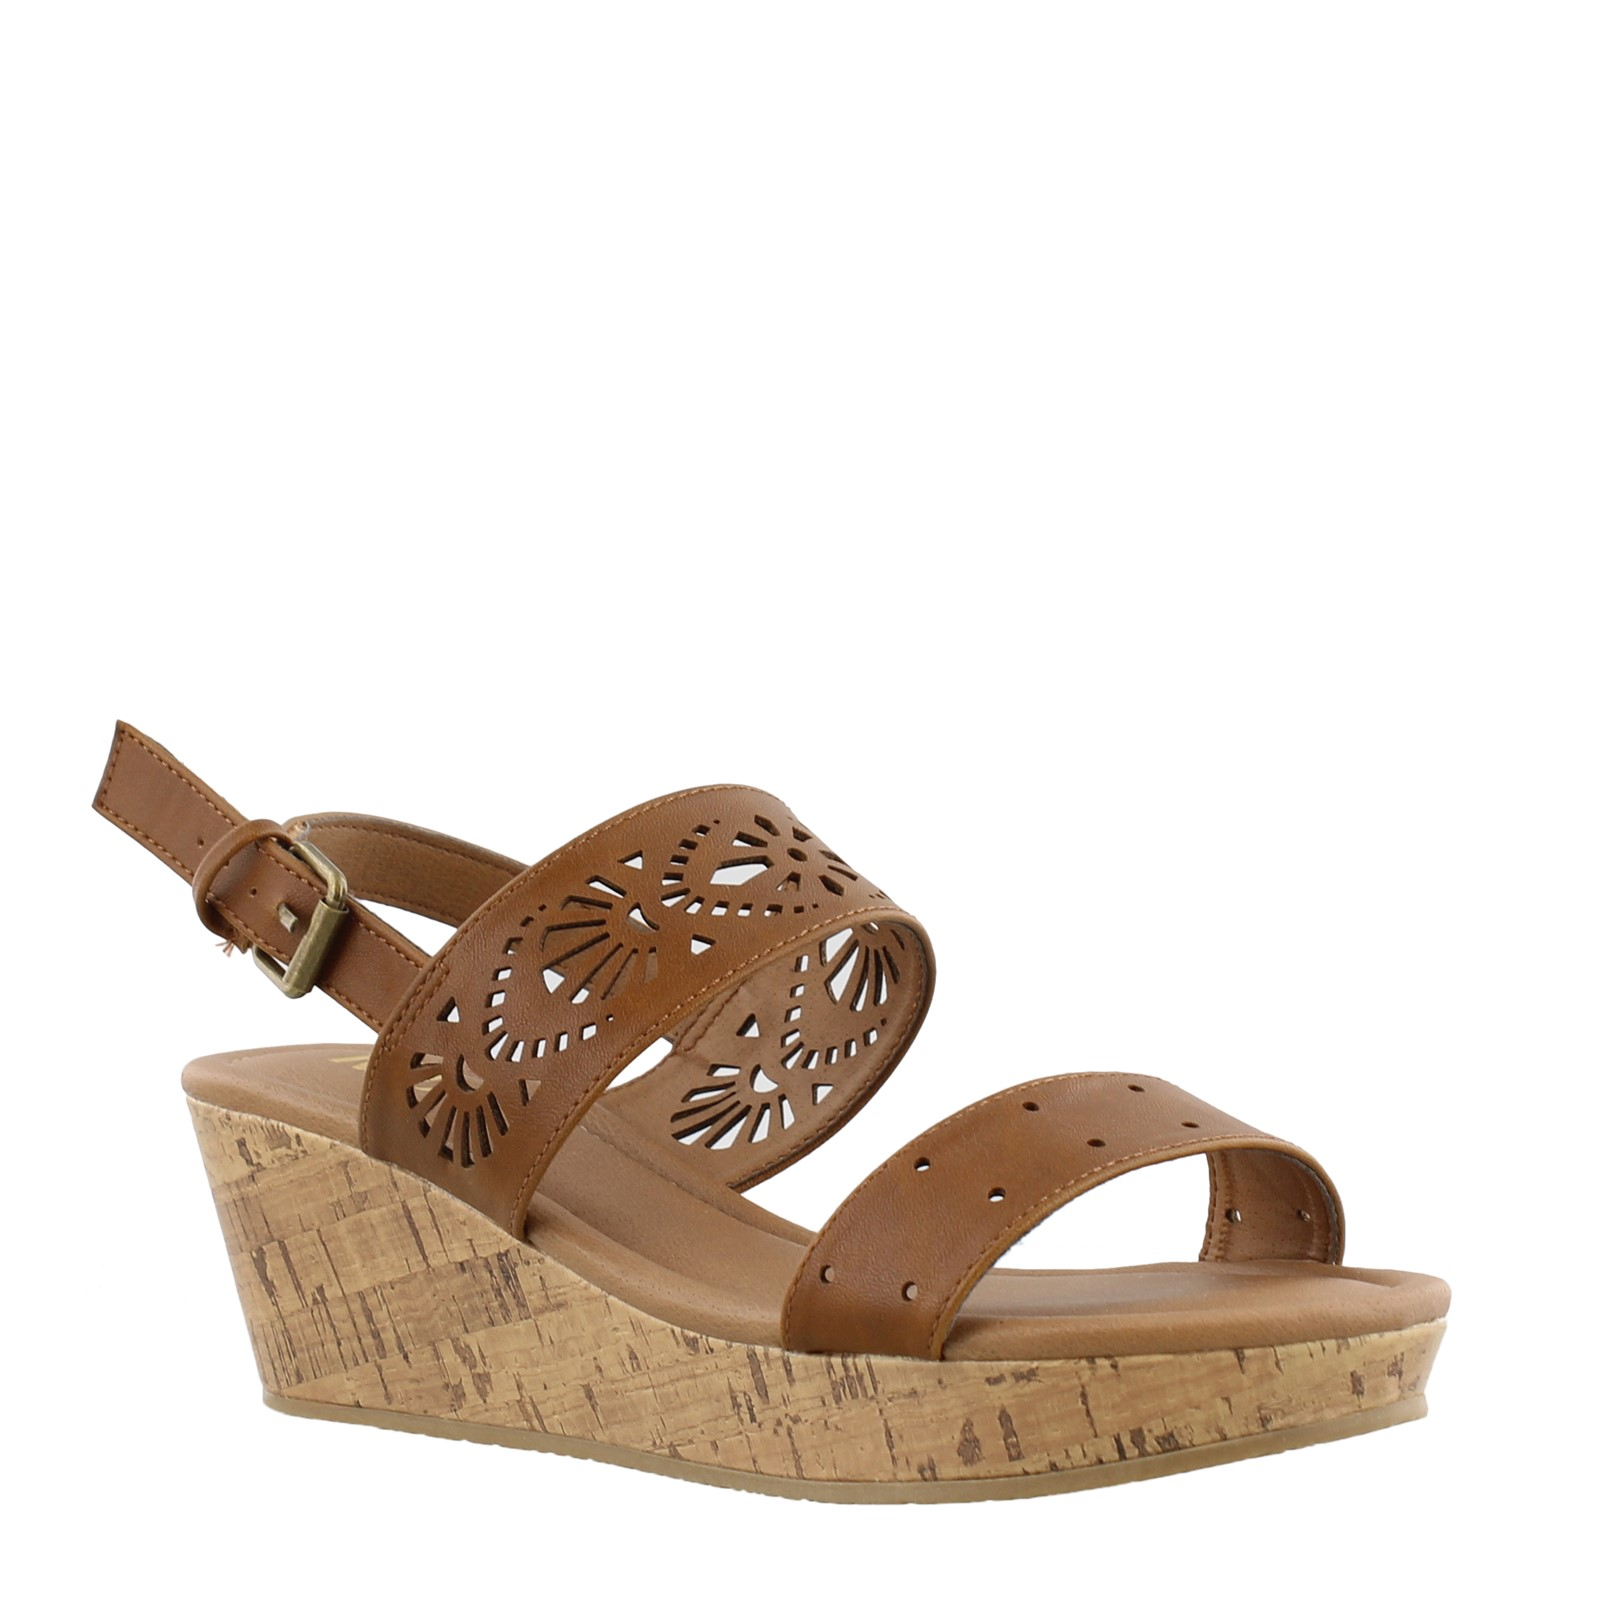 MIA Shelbyy Girls Toddler-Youth Sandal